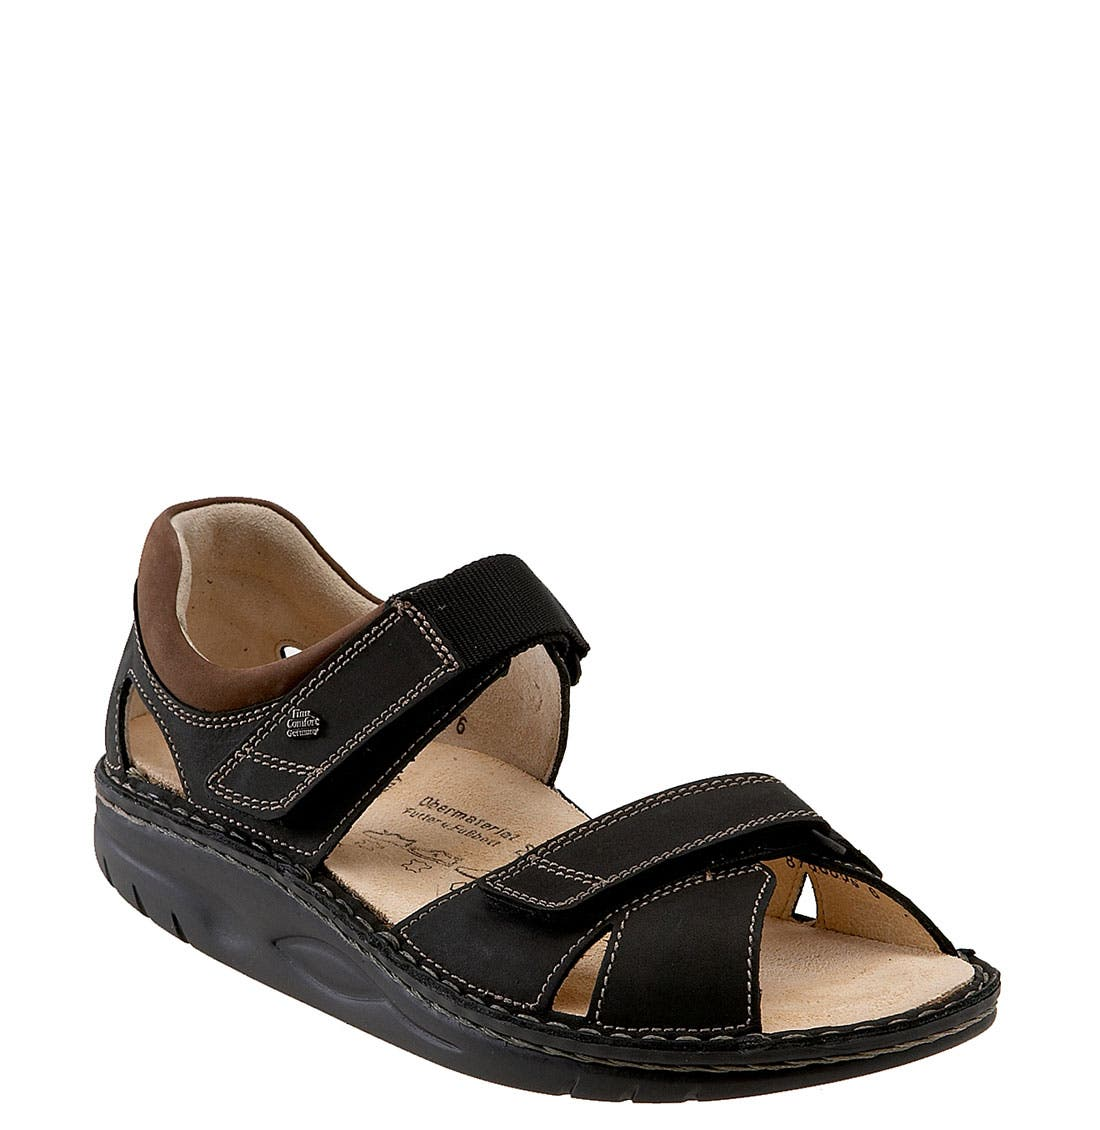 FINNAMIC by Finn Comfort 'Samara' Walking Sandal